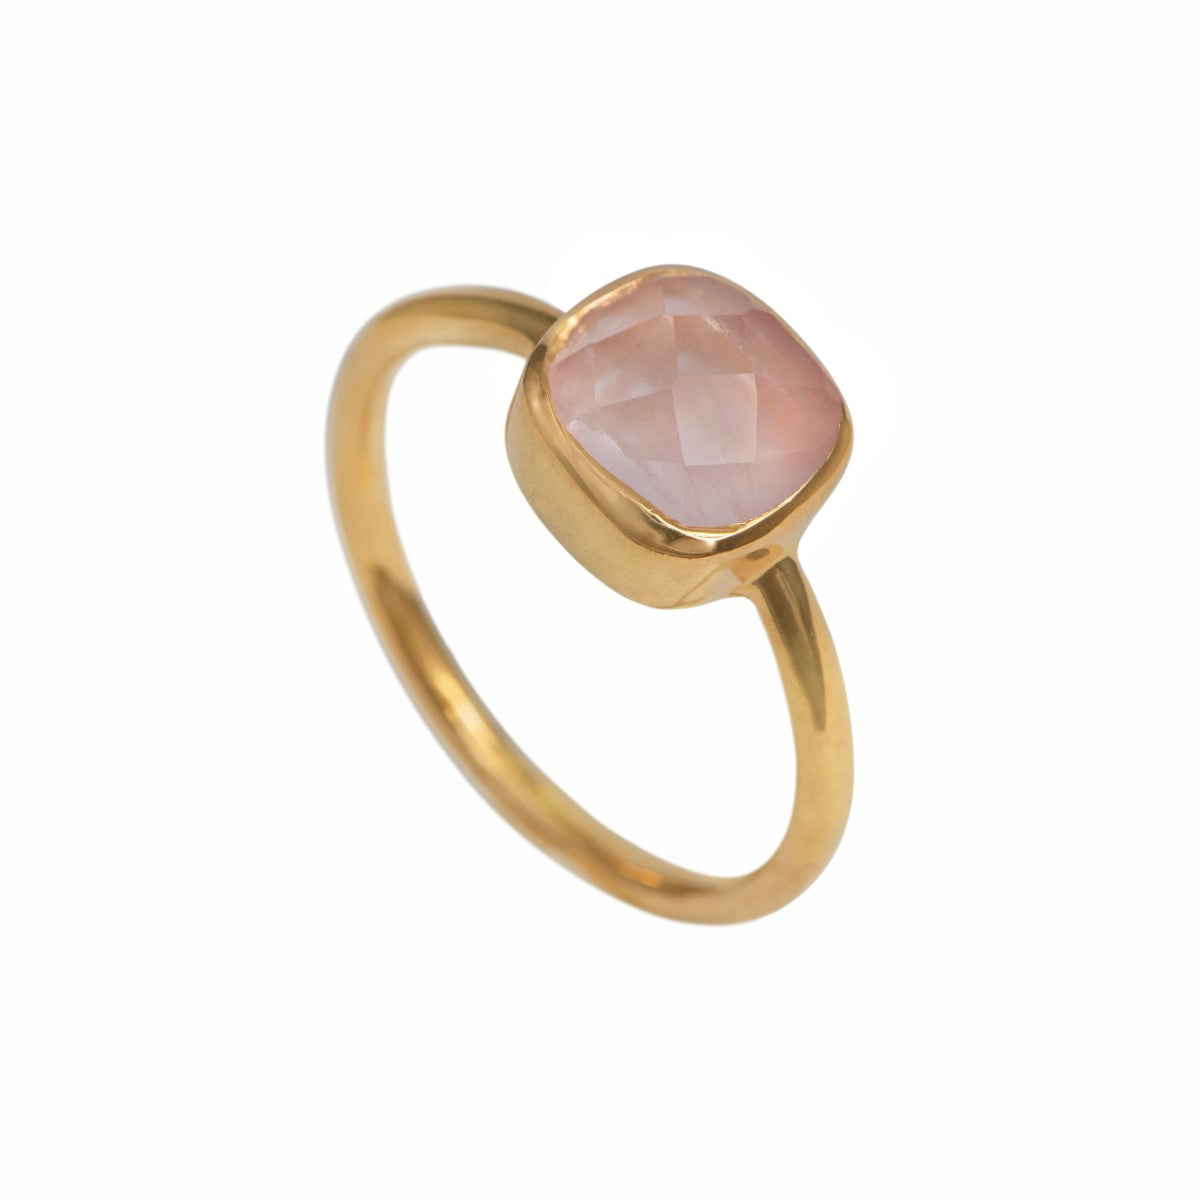 Faceted Square Cut Natural Gemstone Gold Plated Sterling Silver Solitaire Ring - Rose Quartz